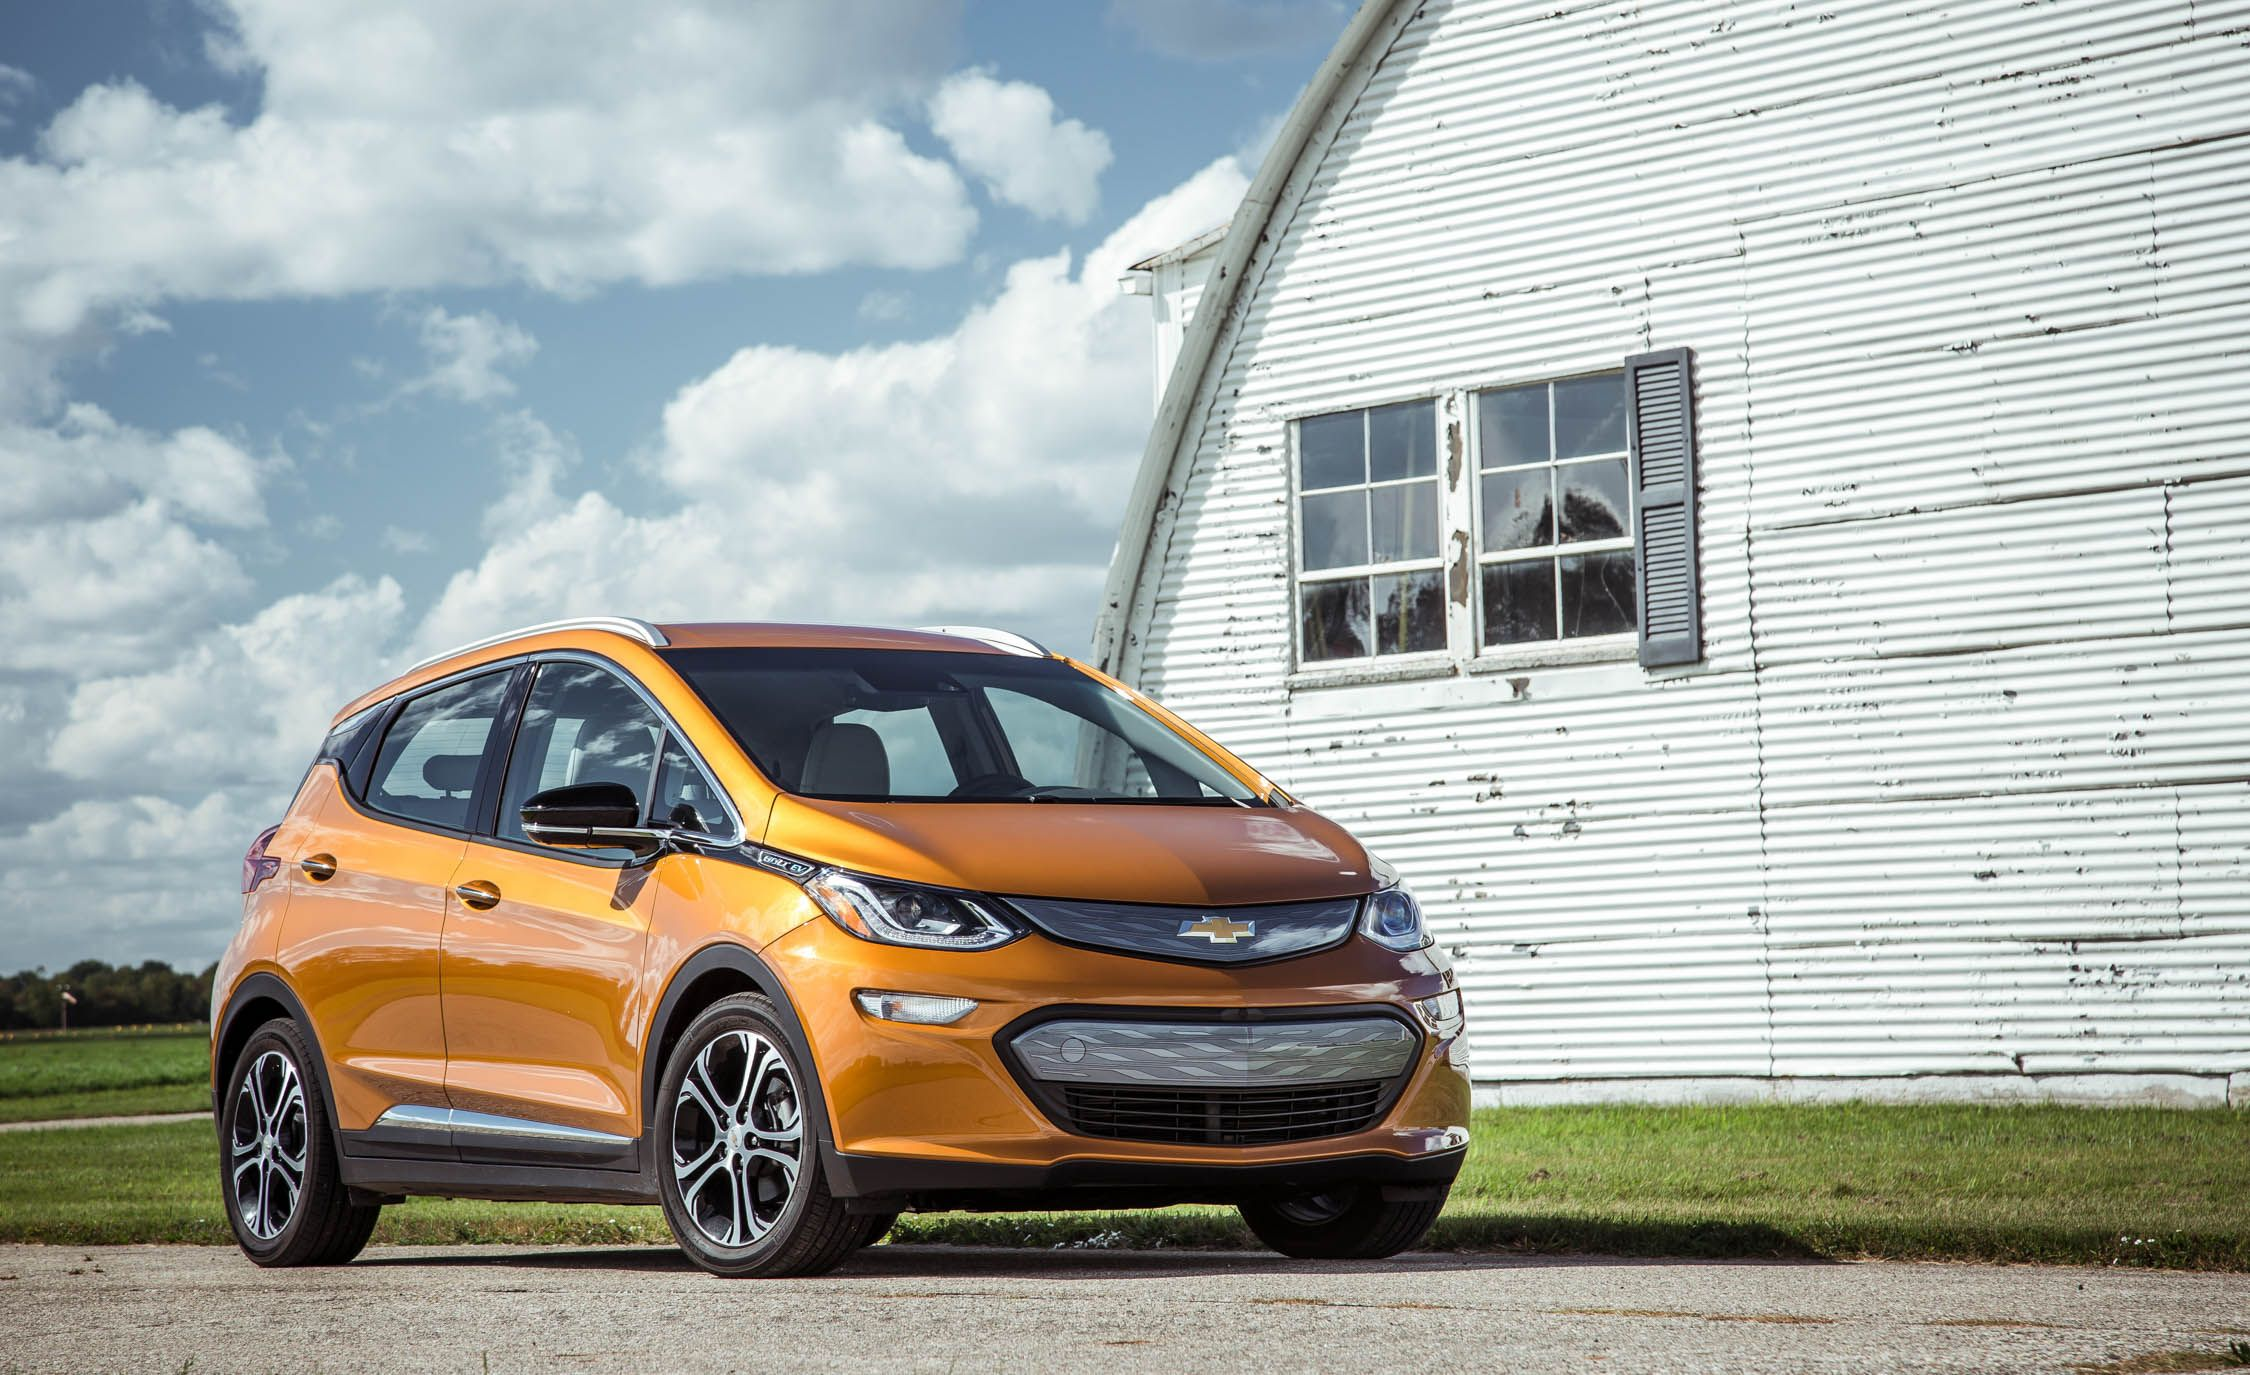 2019 Chevrolet Bolt Ev Review Pricing And Specs